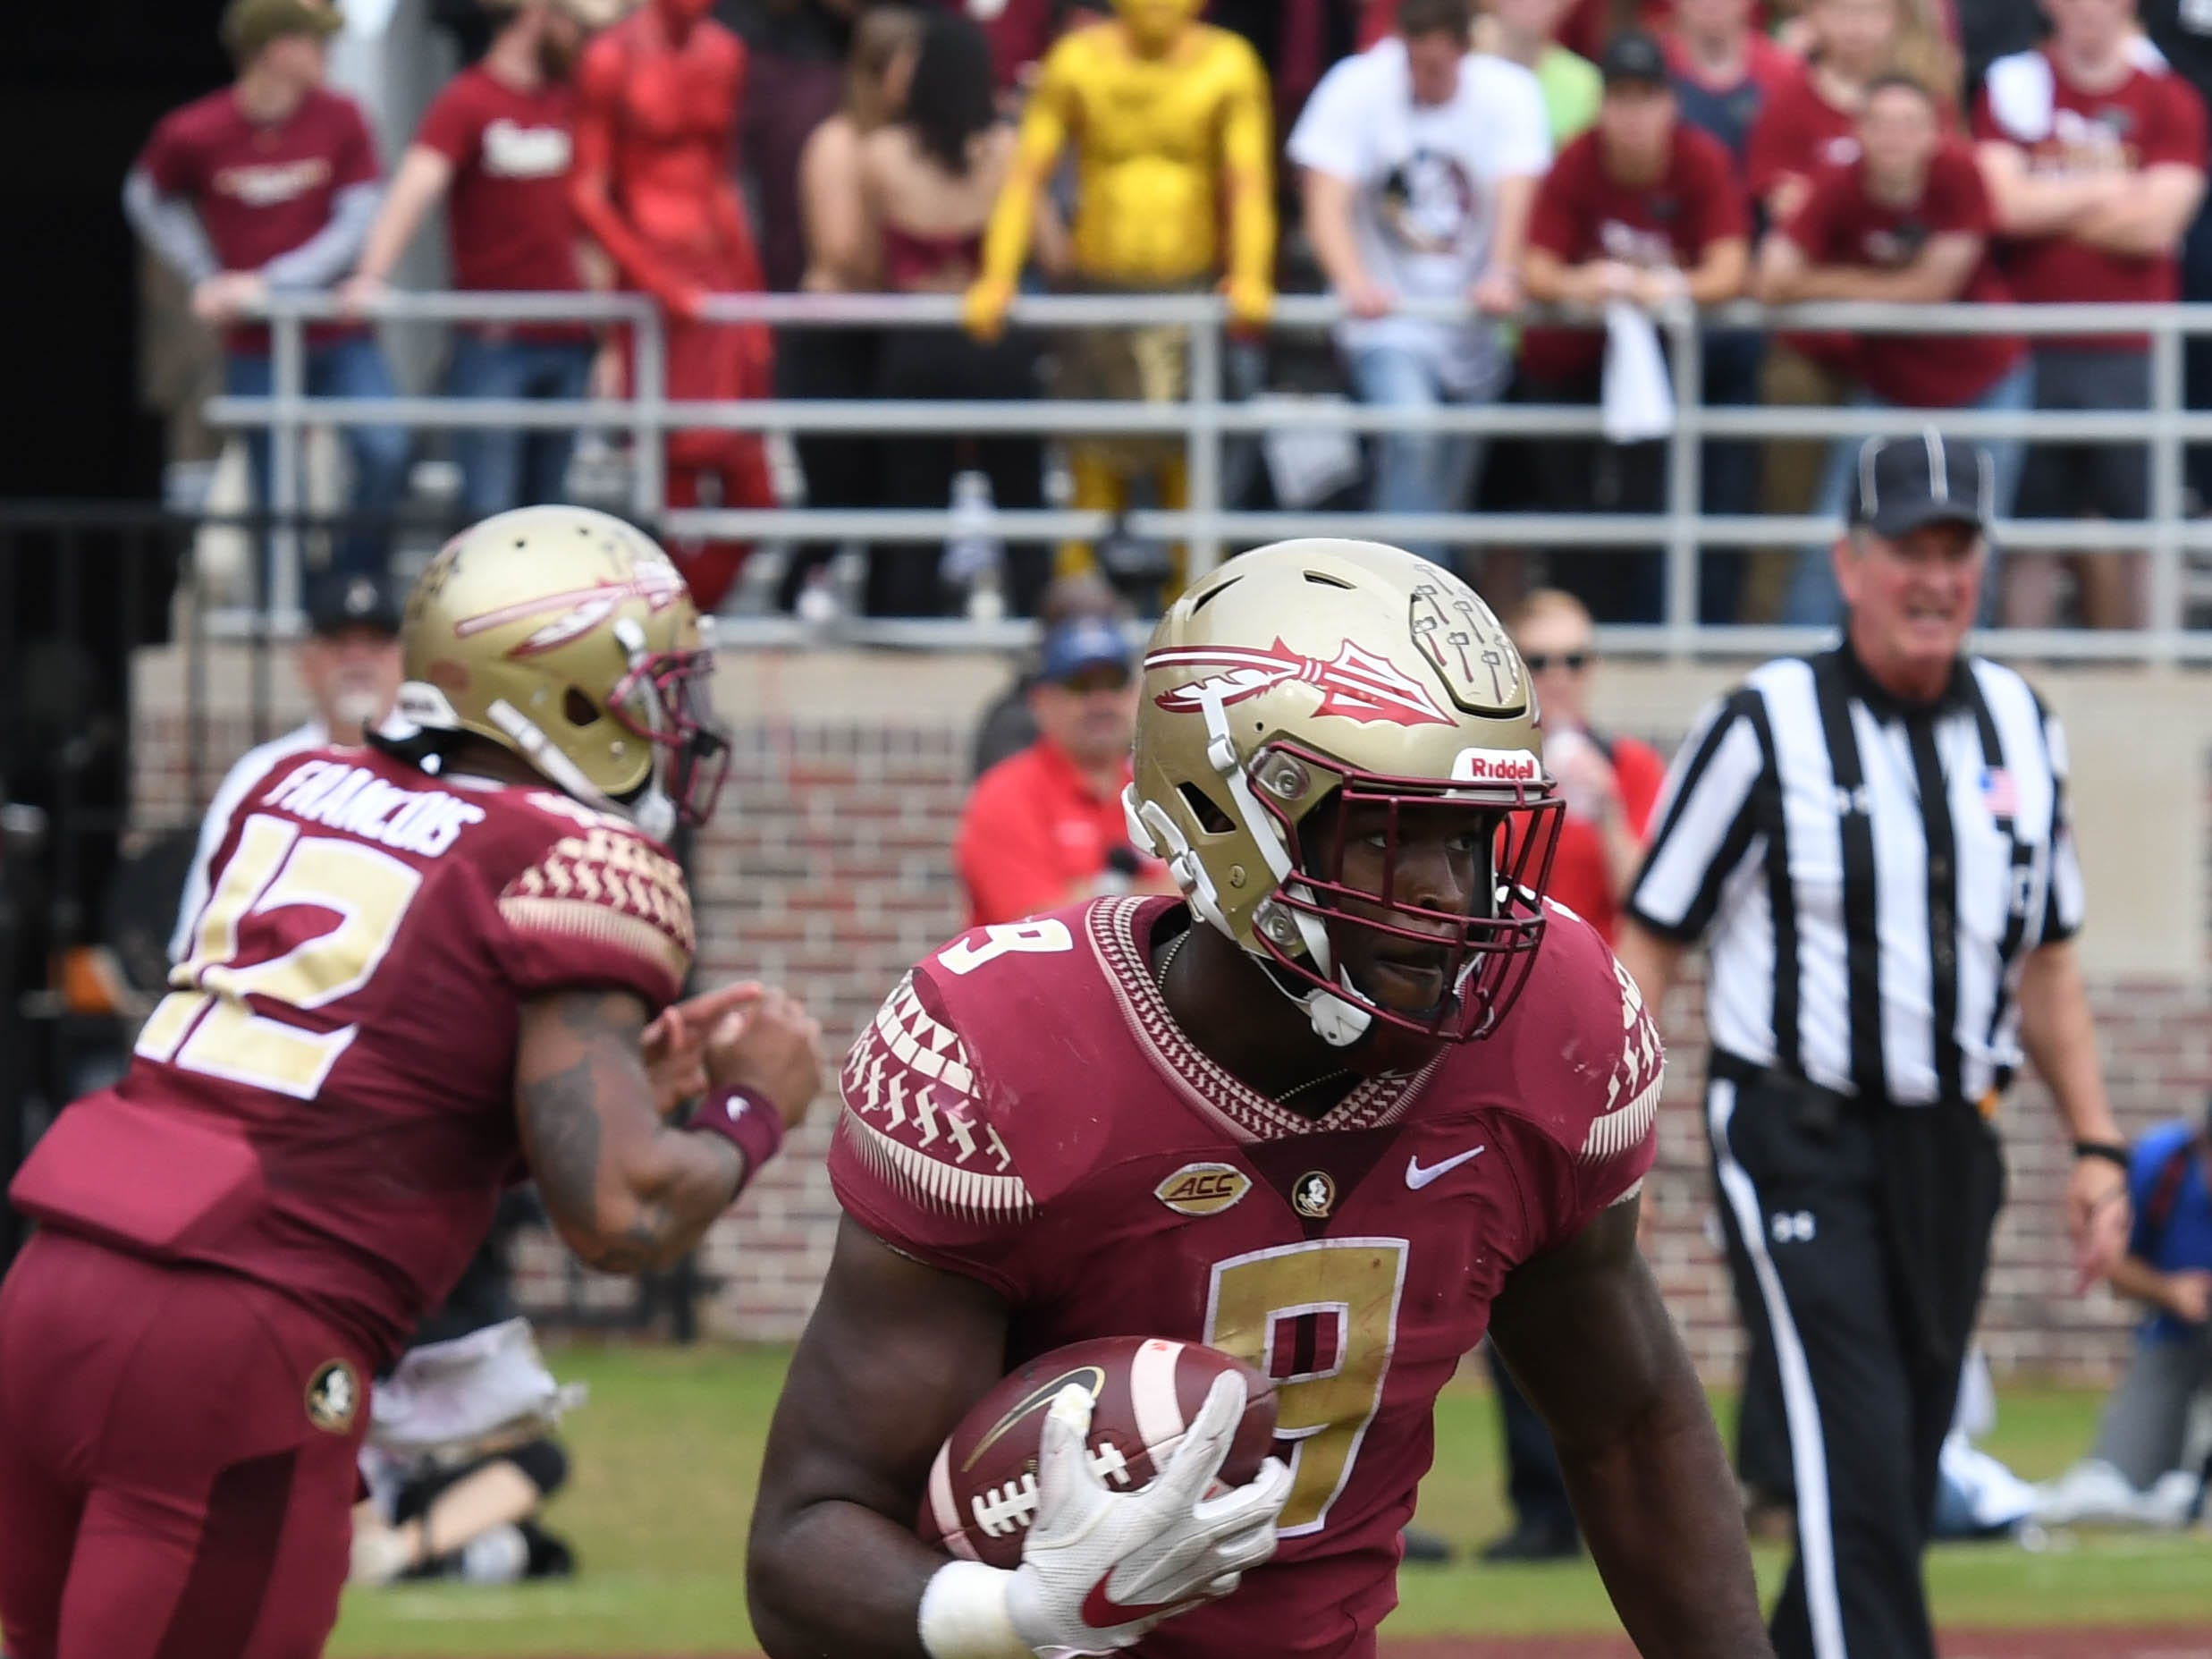 FSU senior runnning back Jacques Patrick (9) running to the outside in the first quarter of the the FSU game against UF at Doak Campbell Stadium on Novemeber 24, 2018.